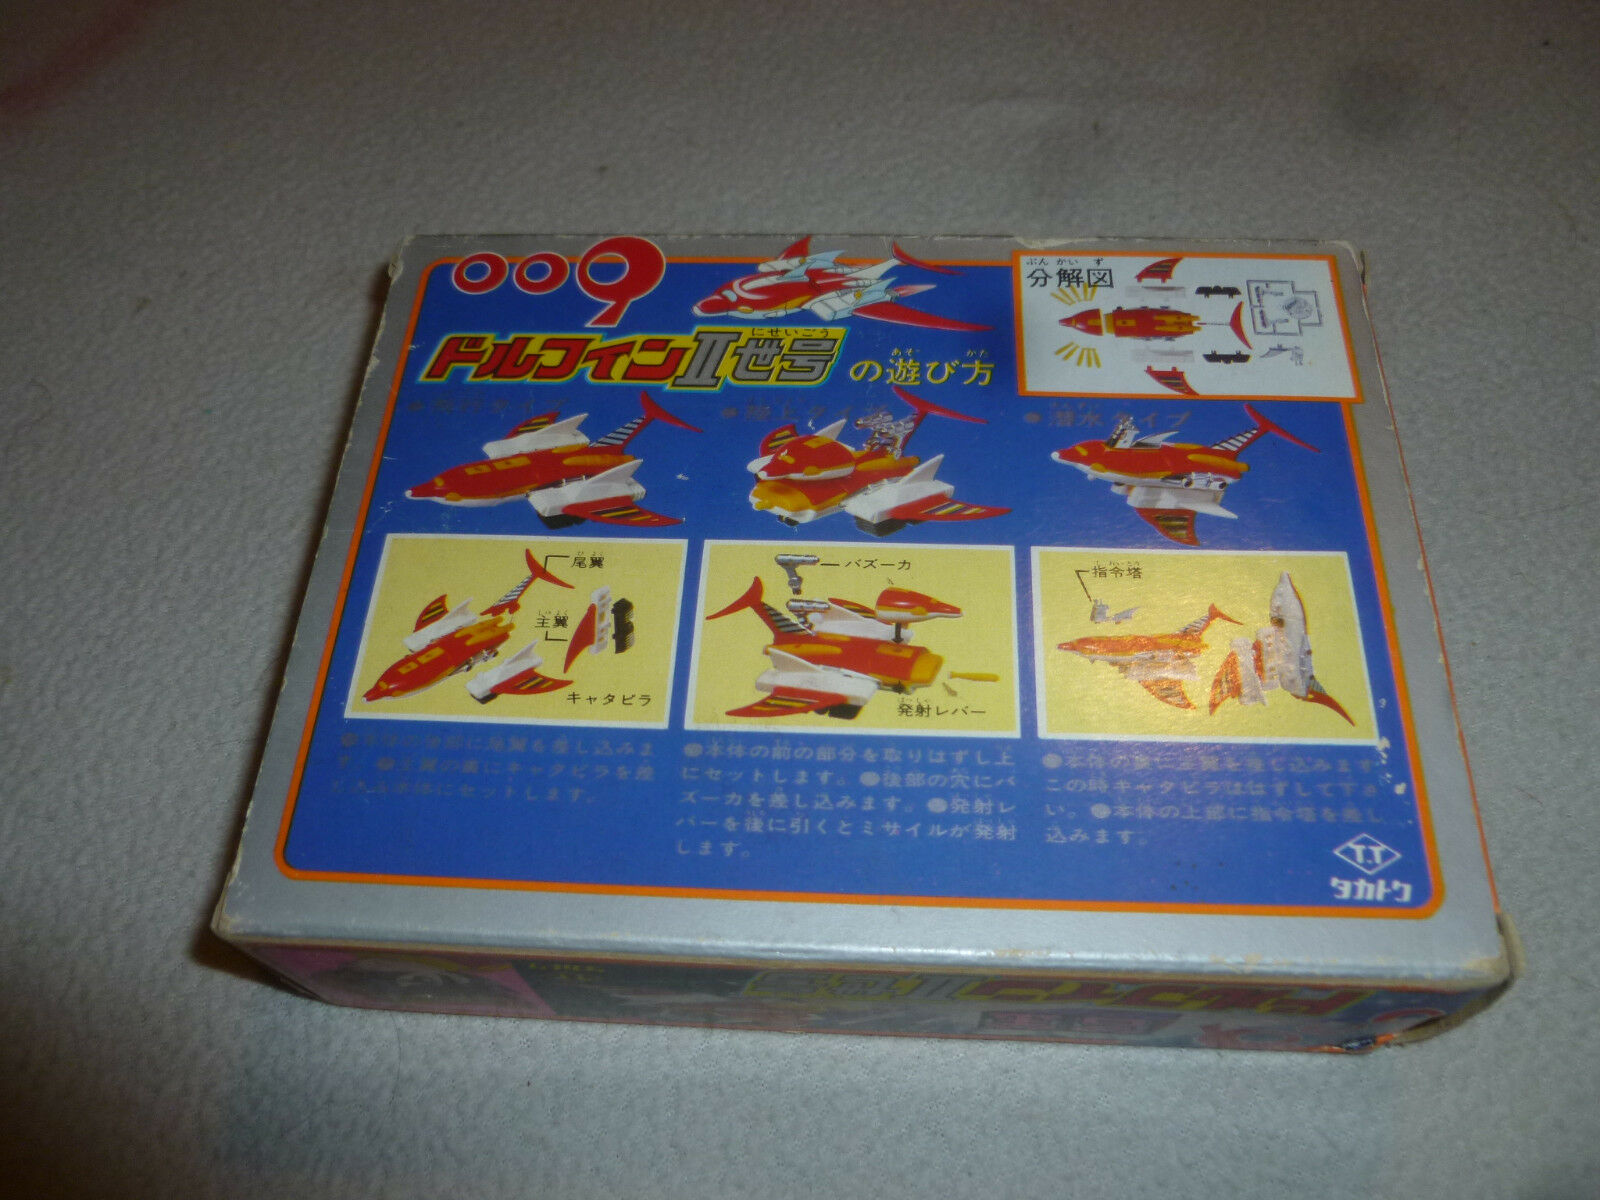 NEW IN BOX TAKATOKU CYBORG 009 DOLPHIN II II II VINTAGE ALLOY TOY SHIP FIGURE JAPAN >> 6092ef